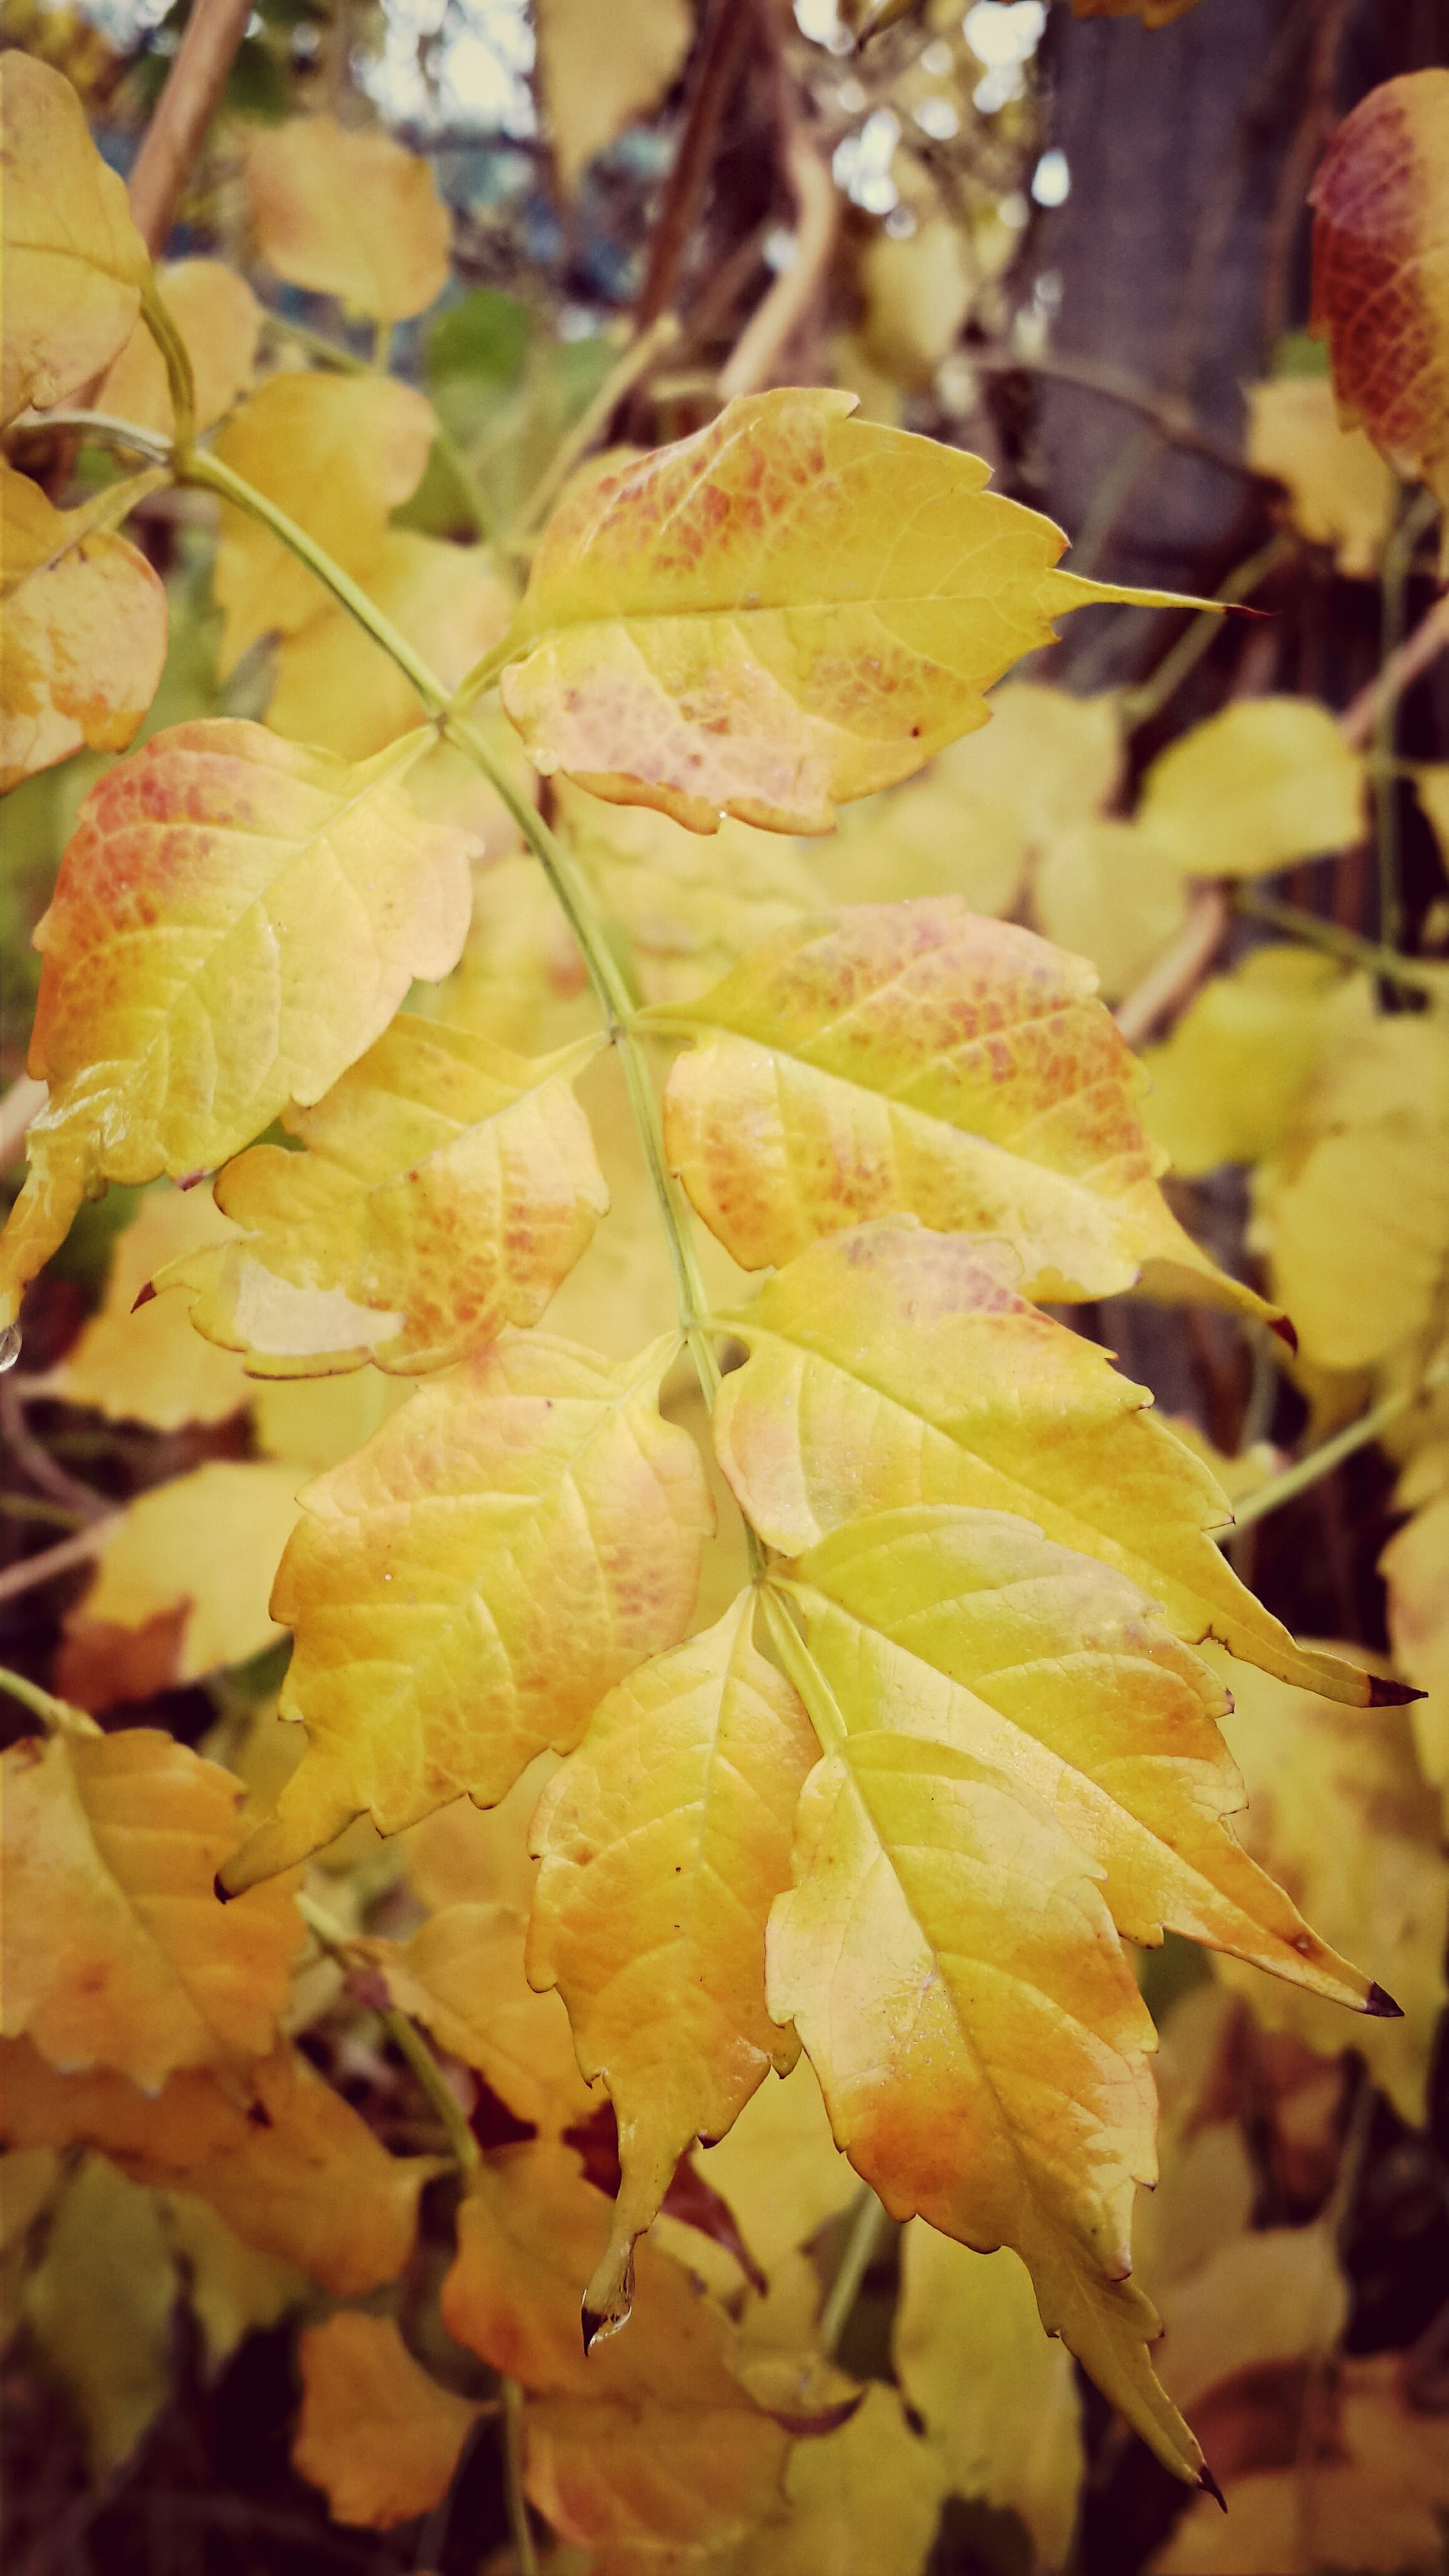 leaf, autumn, close-up, leaves, focus on foreground, season, growth, change, nature, yellow, beauty in nature, leaf vein, selective focus, fragility, branch, outdoors, tranquility, natural pattern, day, dry